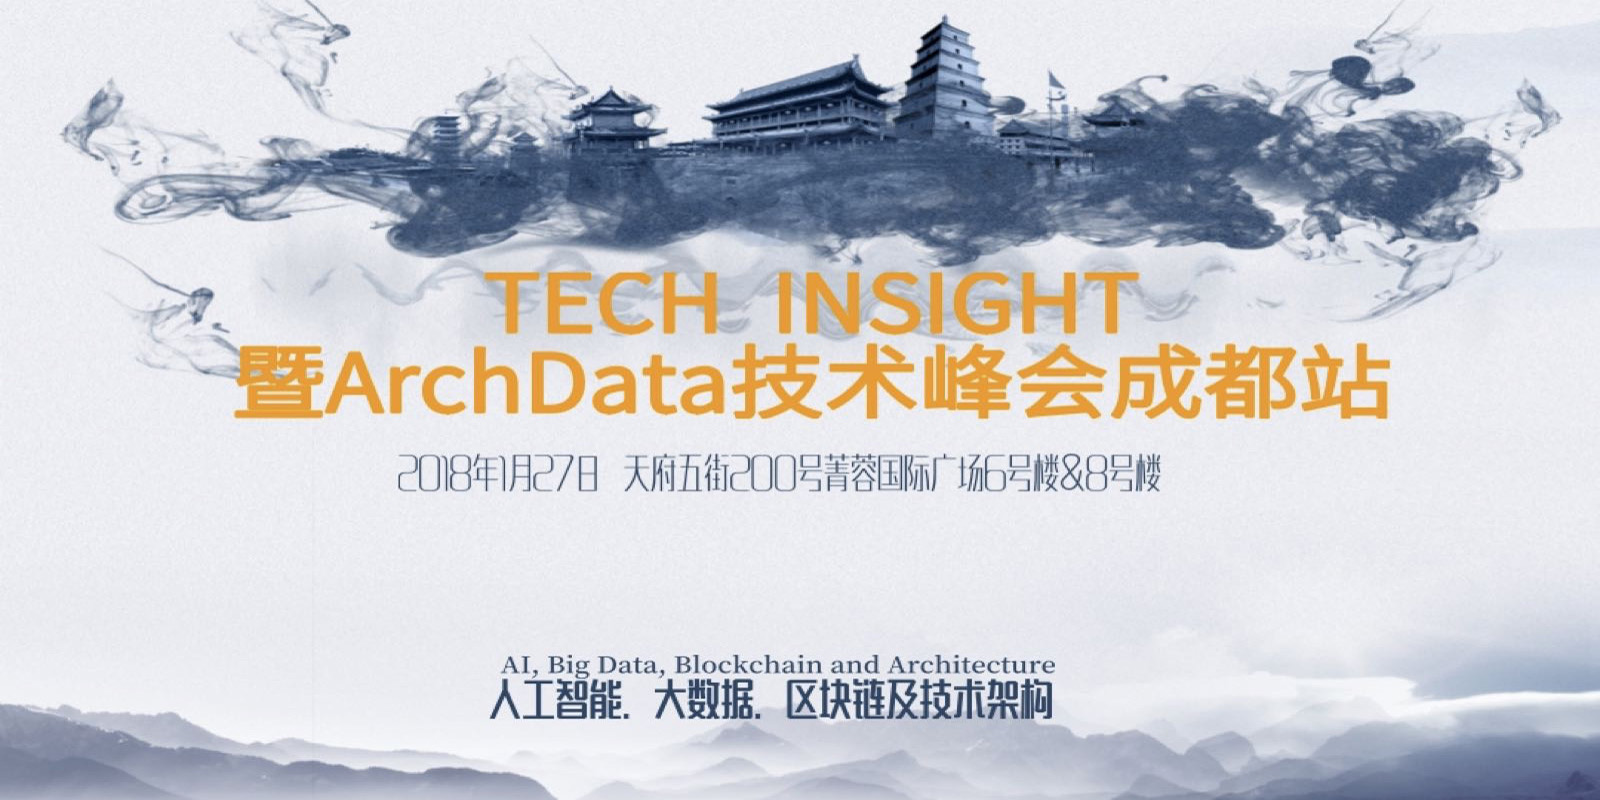 TECH INSIGHT暨ArchData成都站